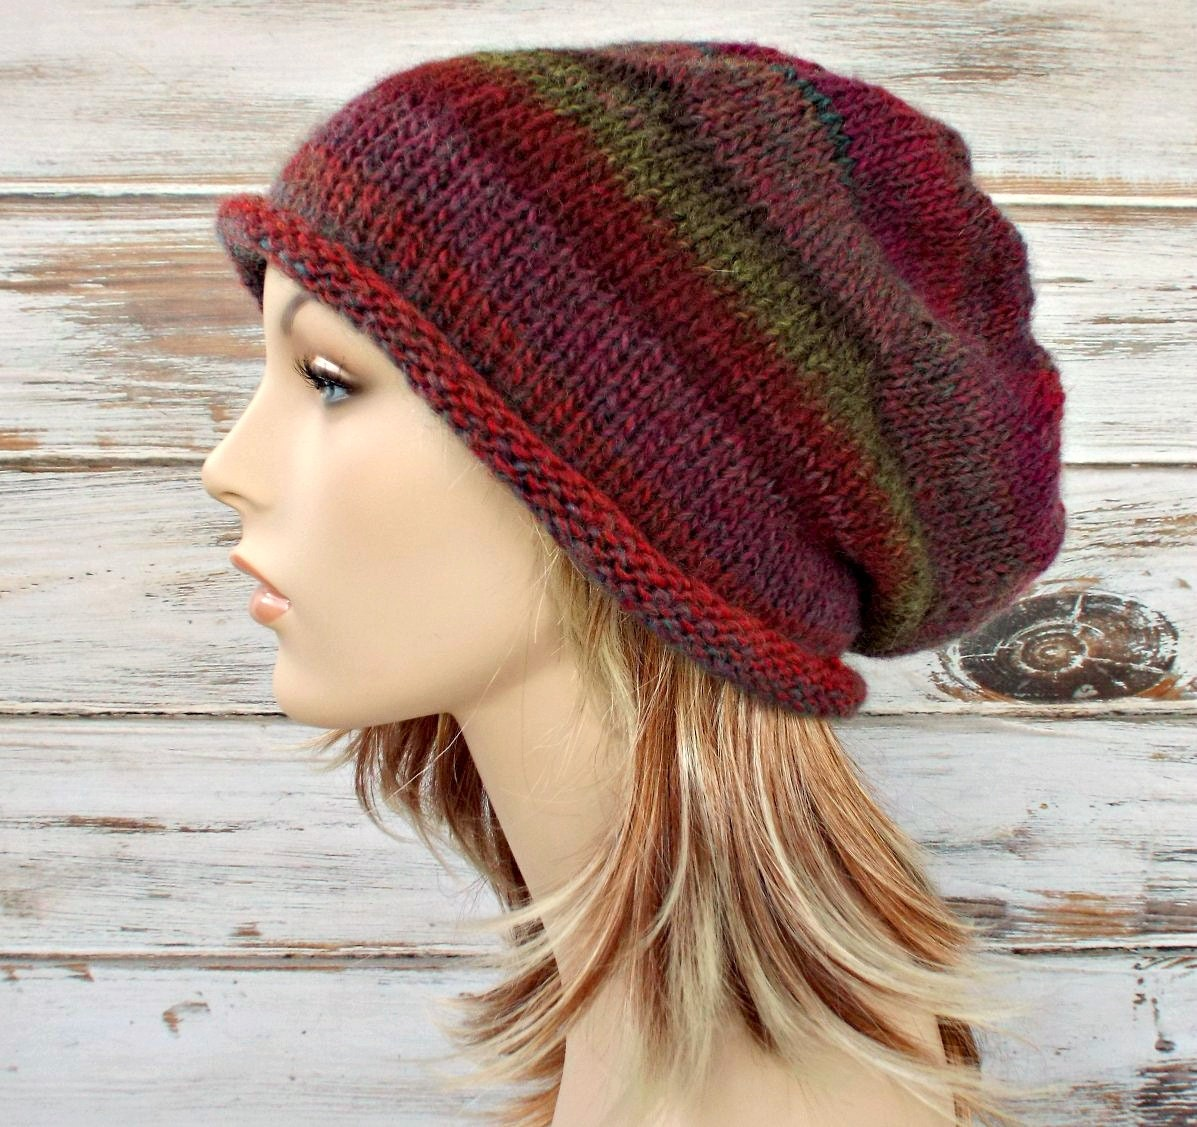 Download Knitting Pattern : Instant Download Knitting Pattern Knit Hat Knitting by pixiebell